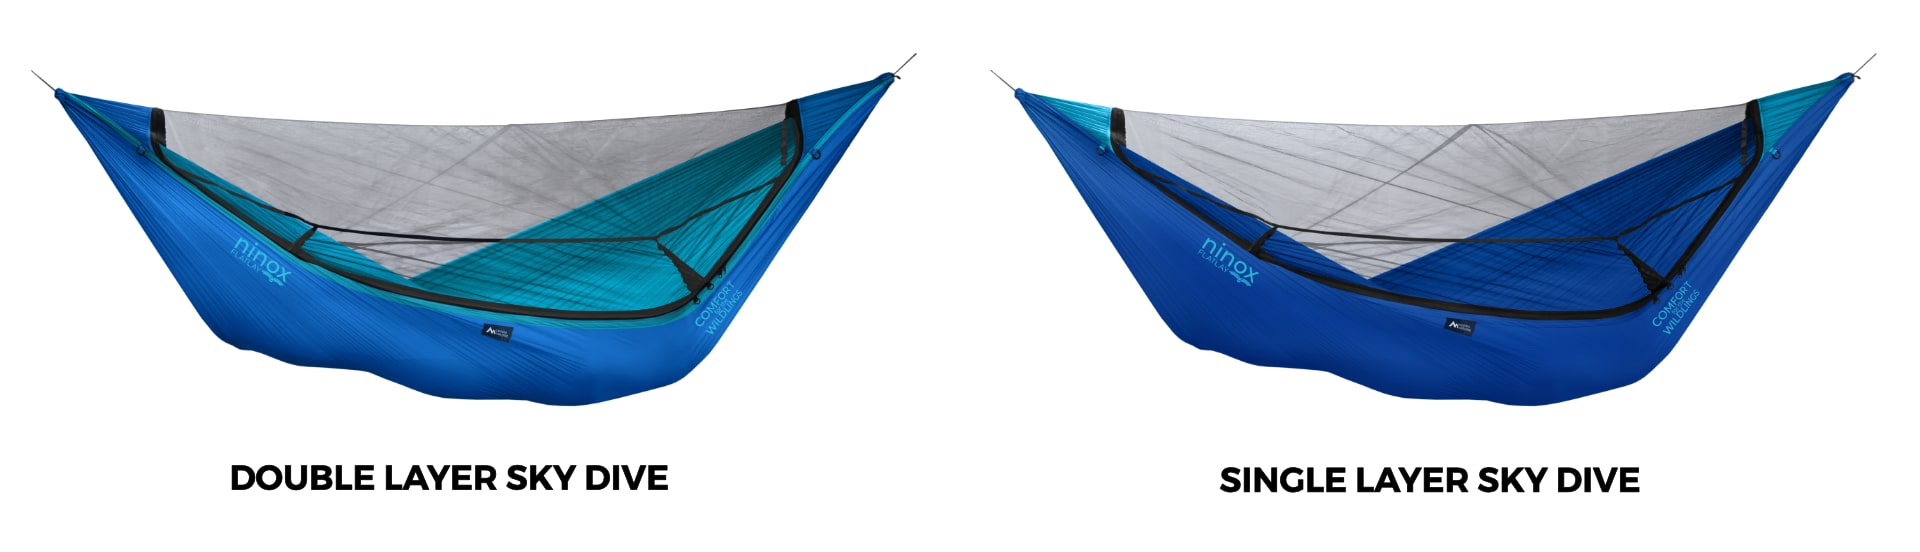 Ninox Double Layer vs. Single Layer Hammock in Sky Dive!